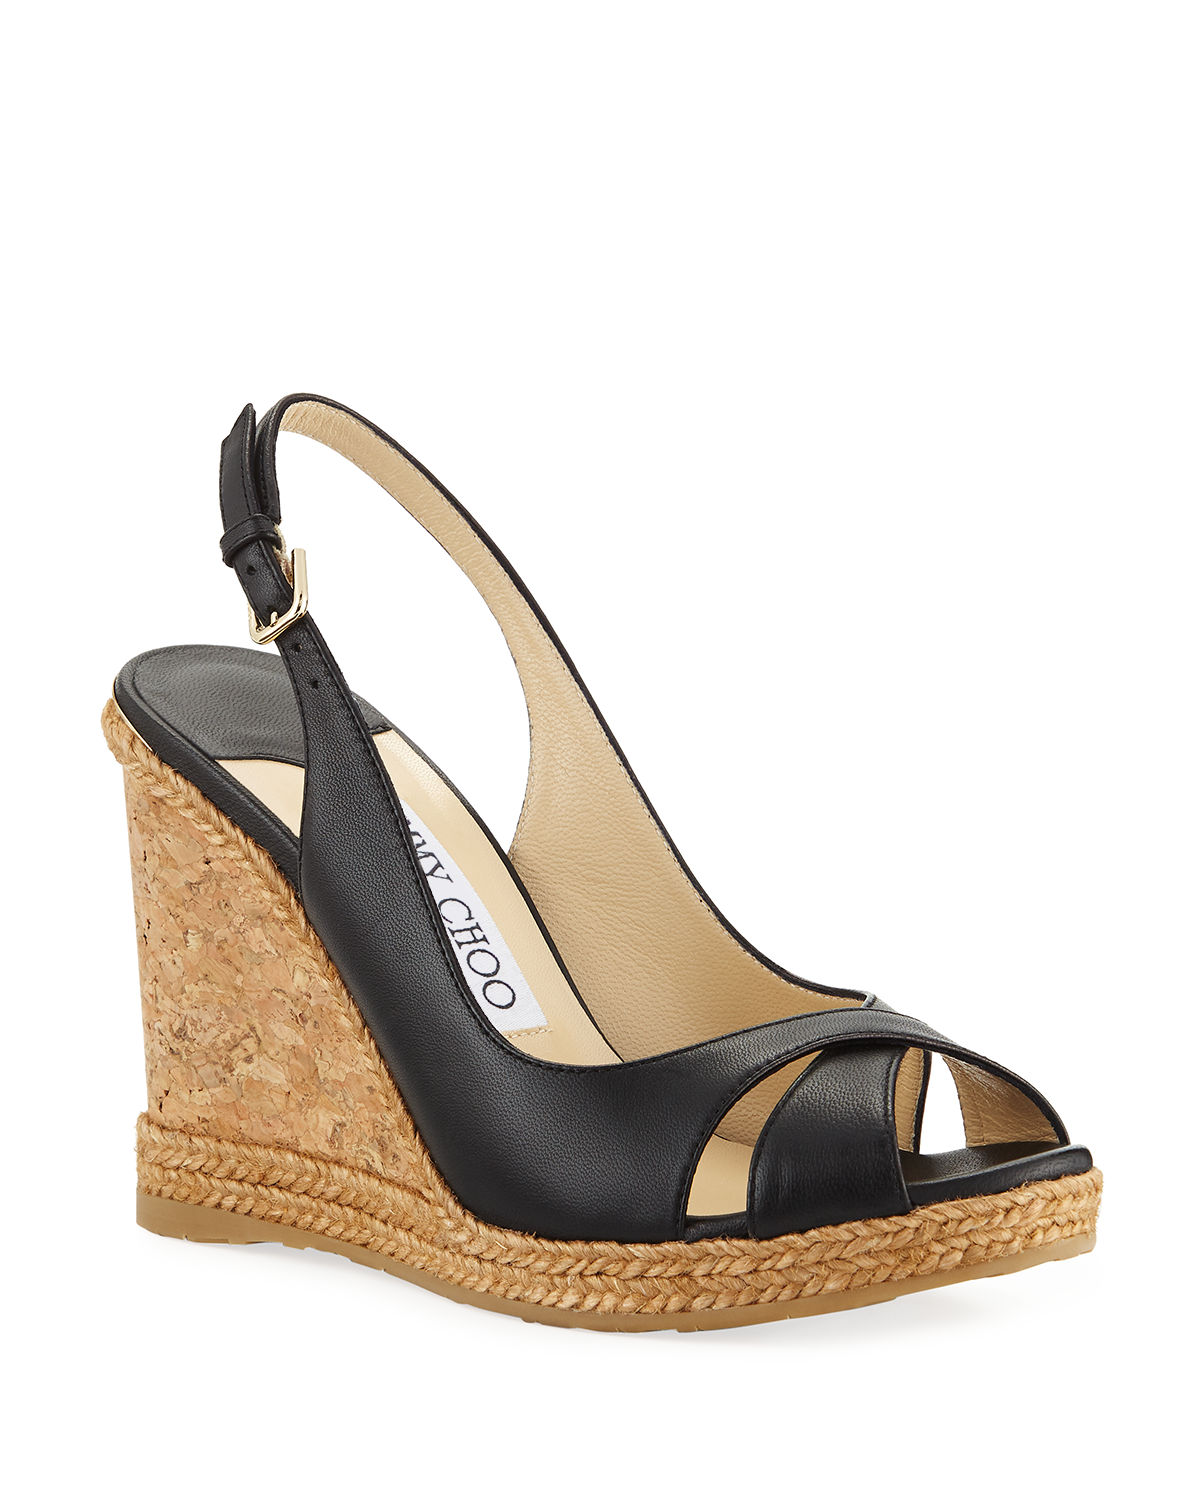 396b8f3d8b Jimmy Choo Amely 105mm Leather Cork Wedge Sandals | Neiman Marcus